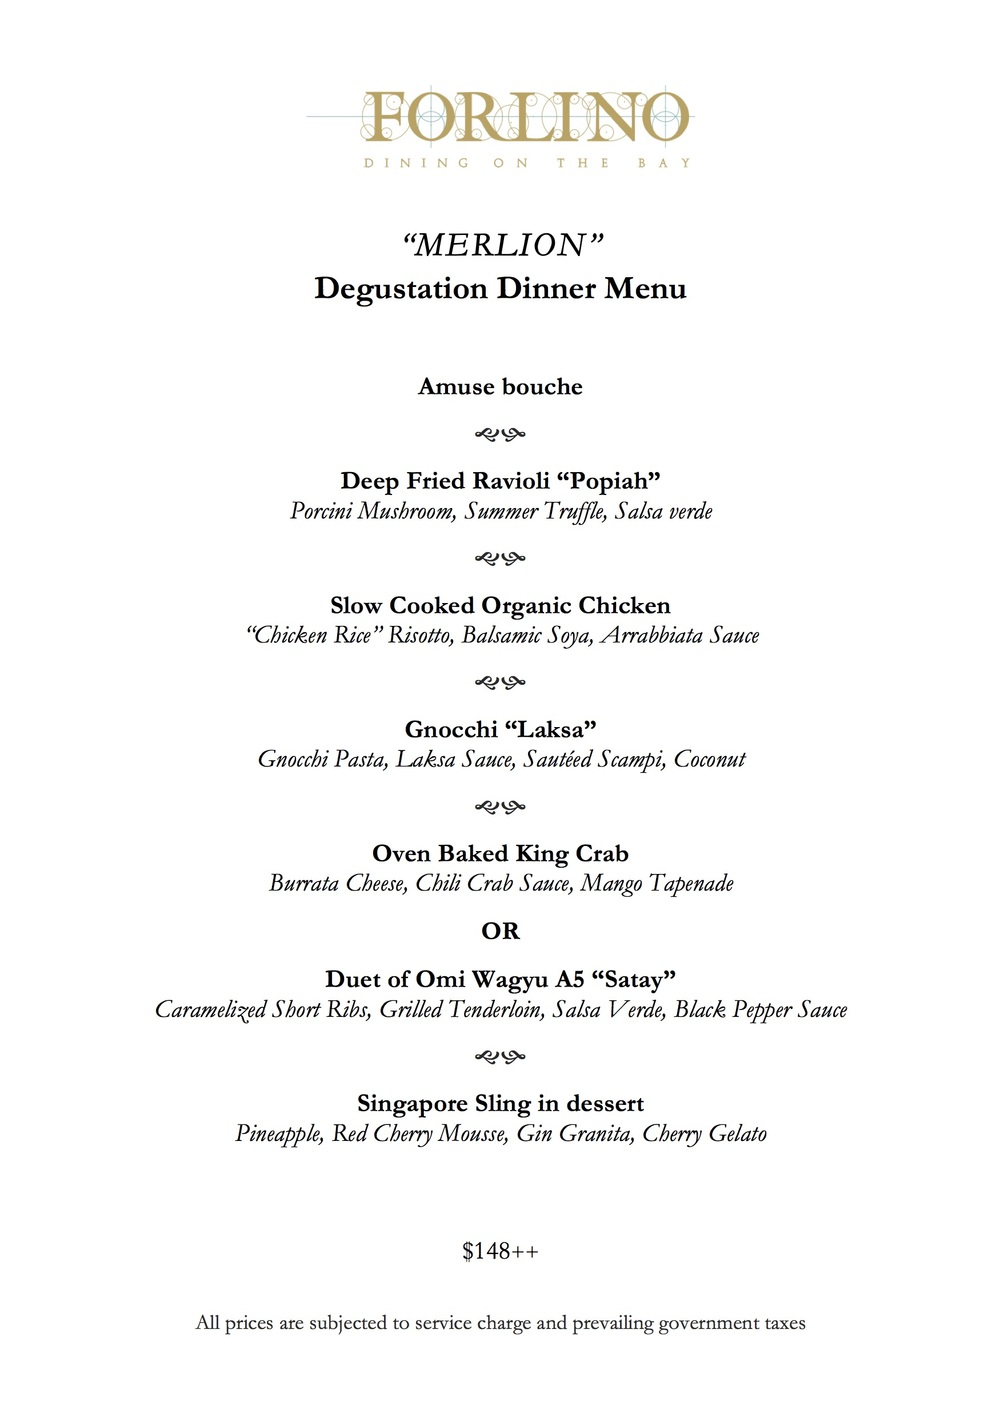 National Day Degustation Set Menus 2016.jpg